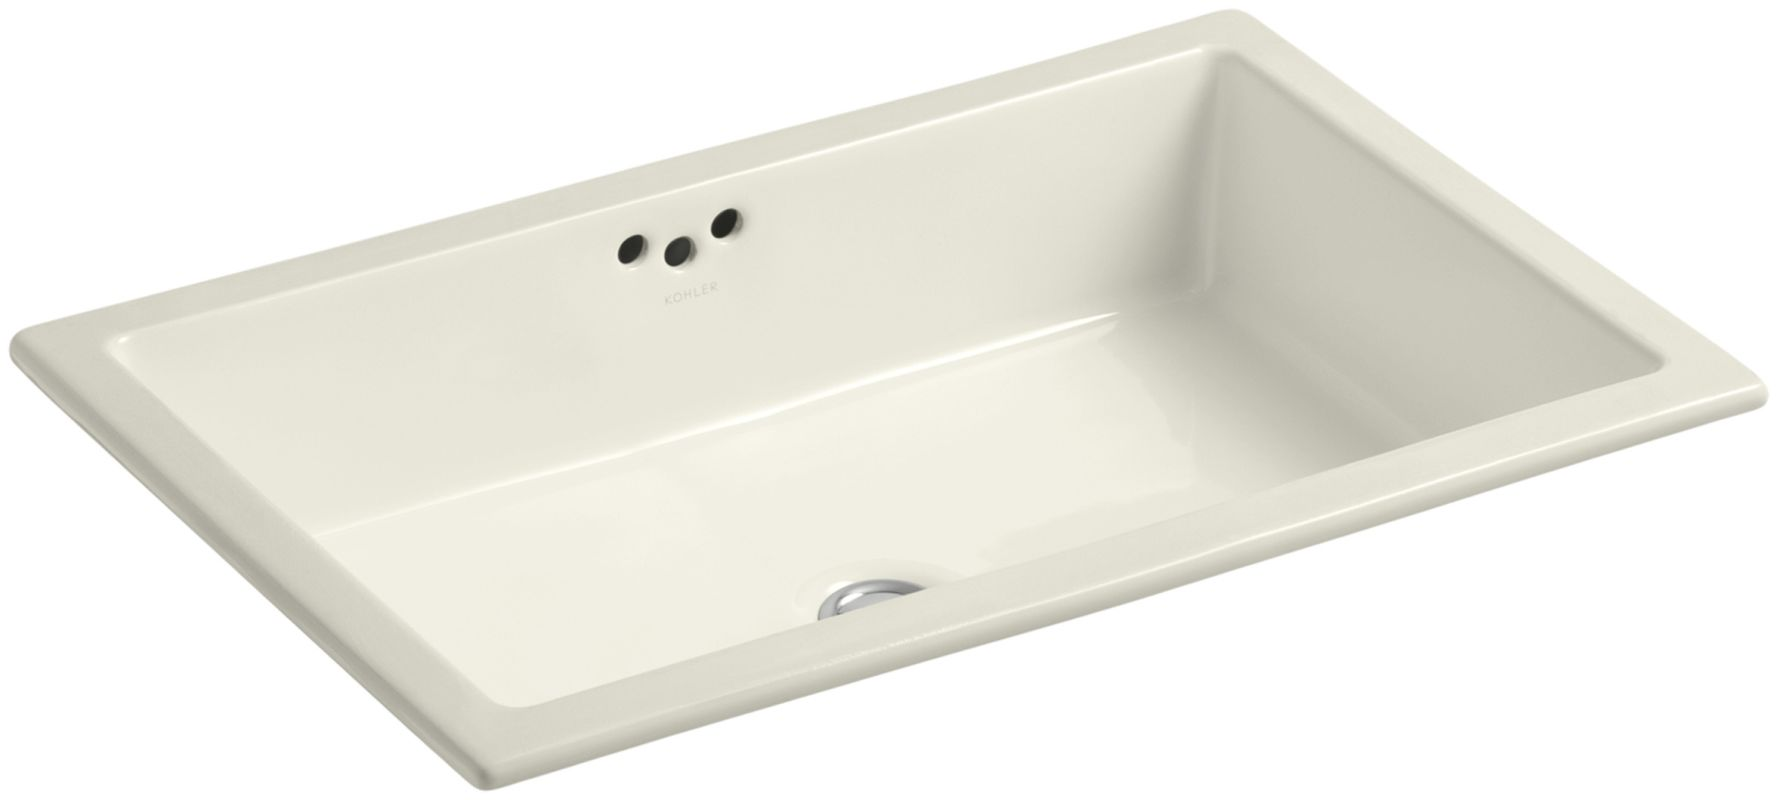 Kohler K 2297 G 96 Biscuit Kathryn 21 Undermount Bathroom Sink With Overflow